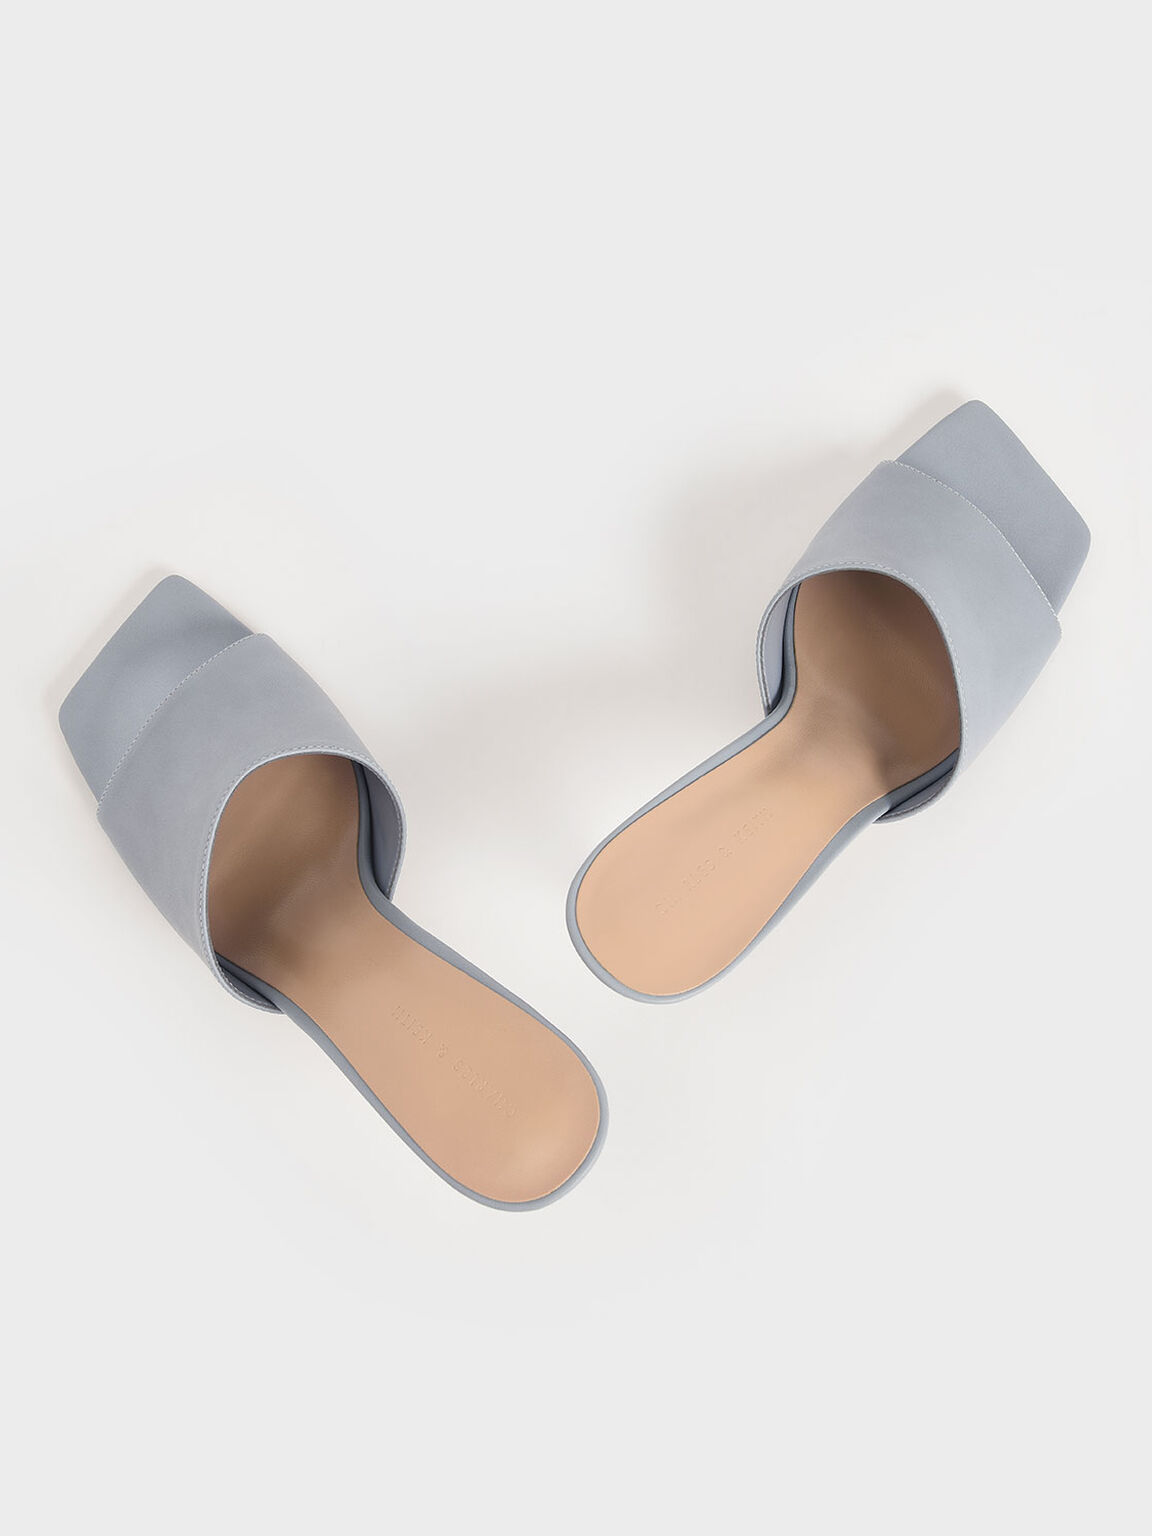 Square Toe Mules, Light Blue, hi-res